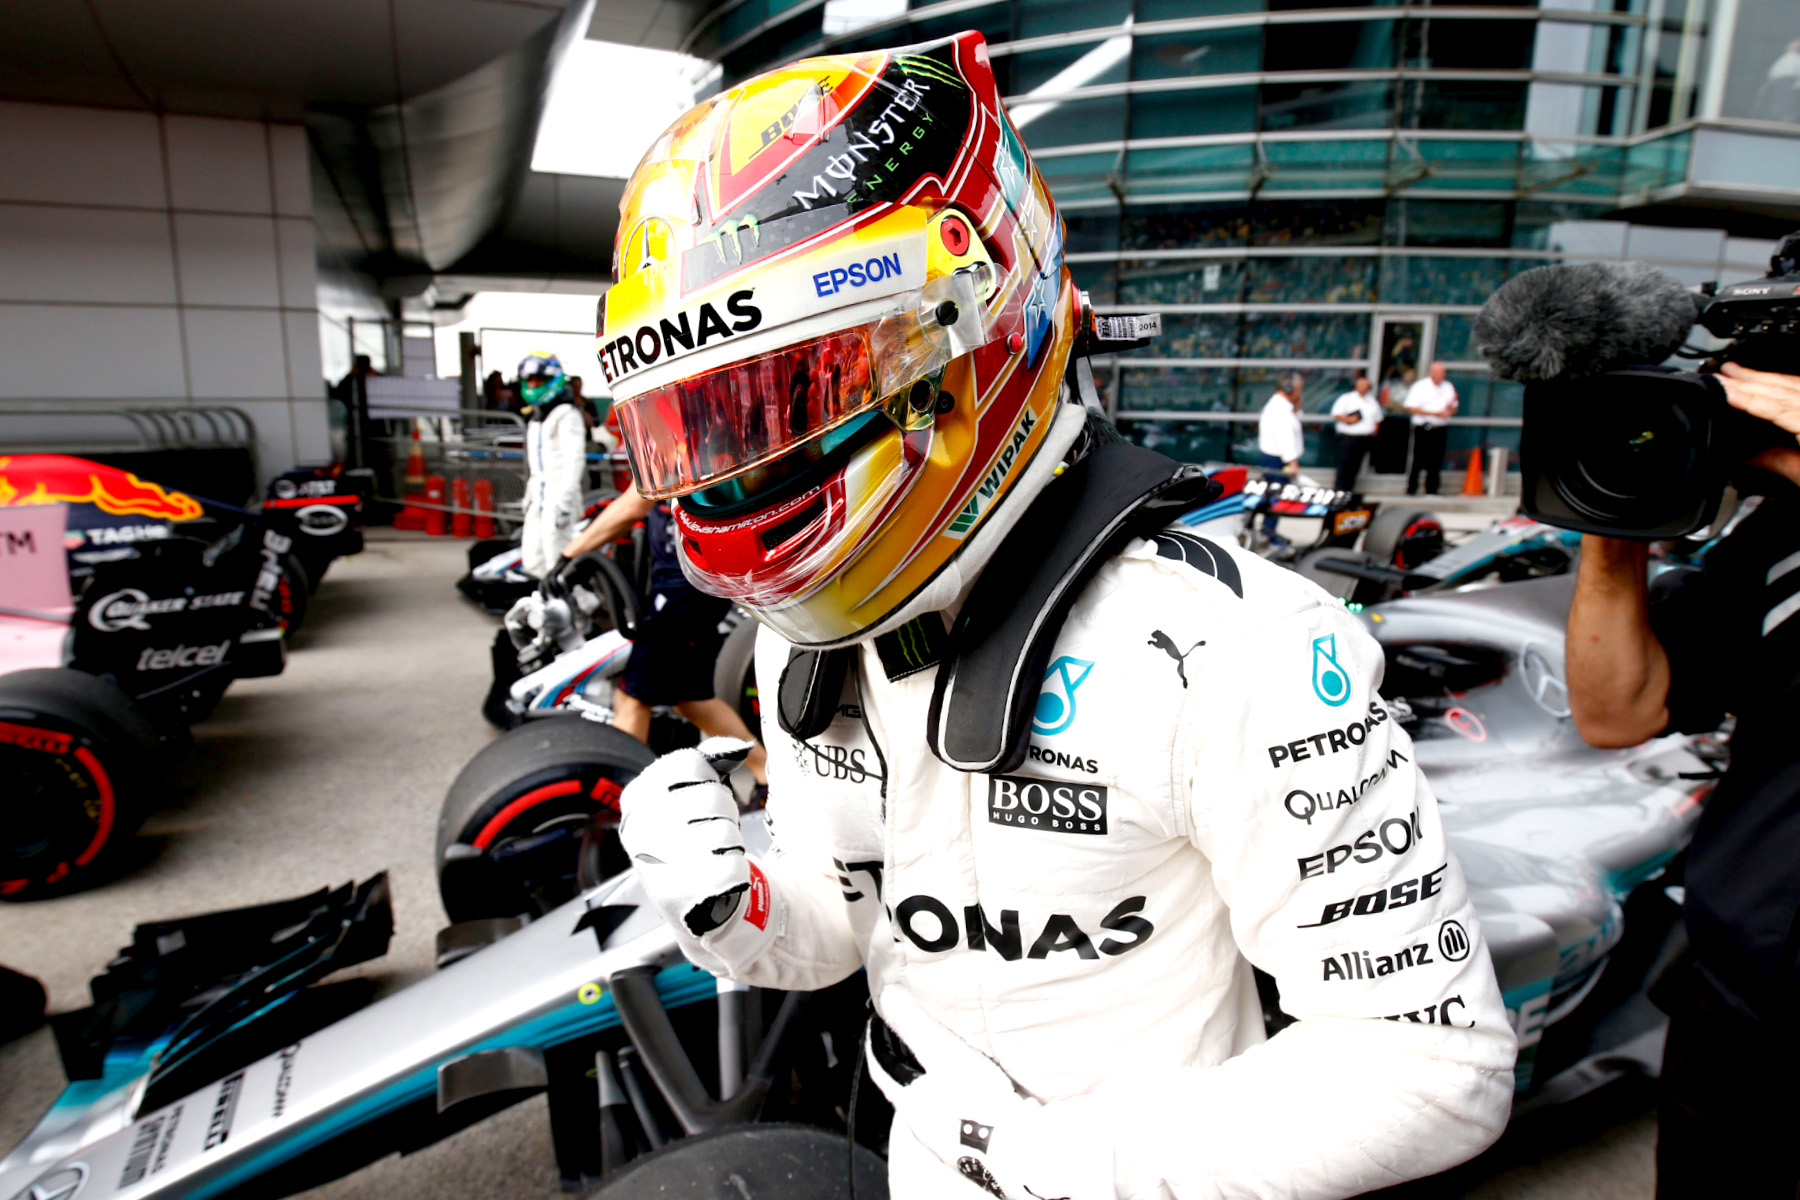 Hamilton steals pole in China